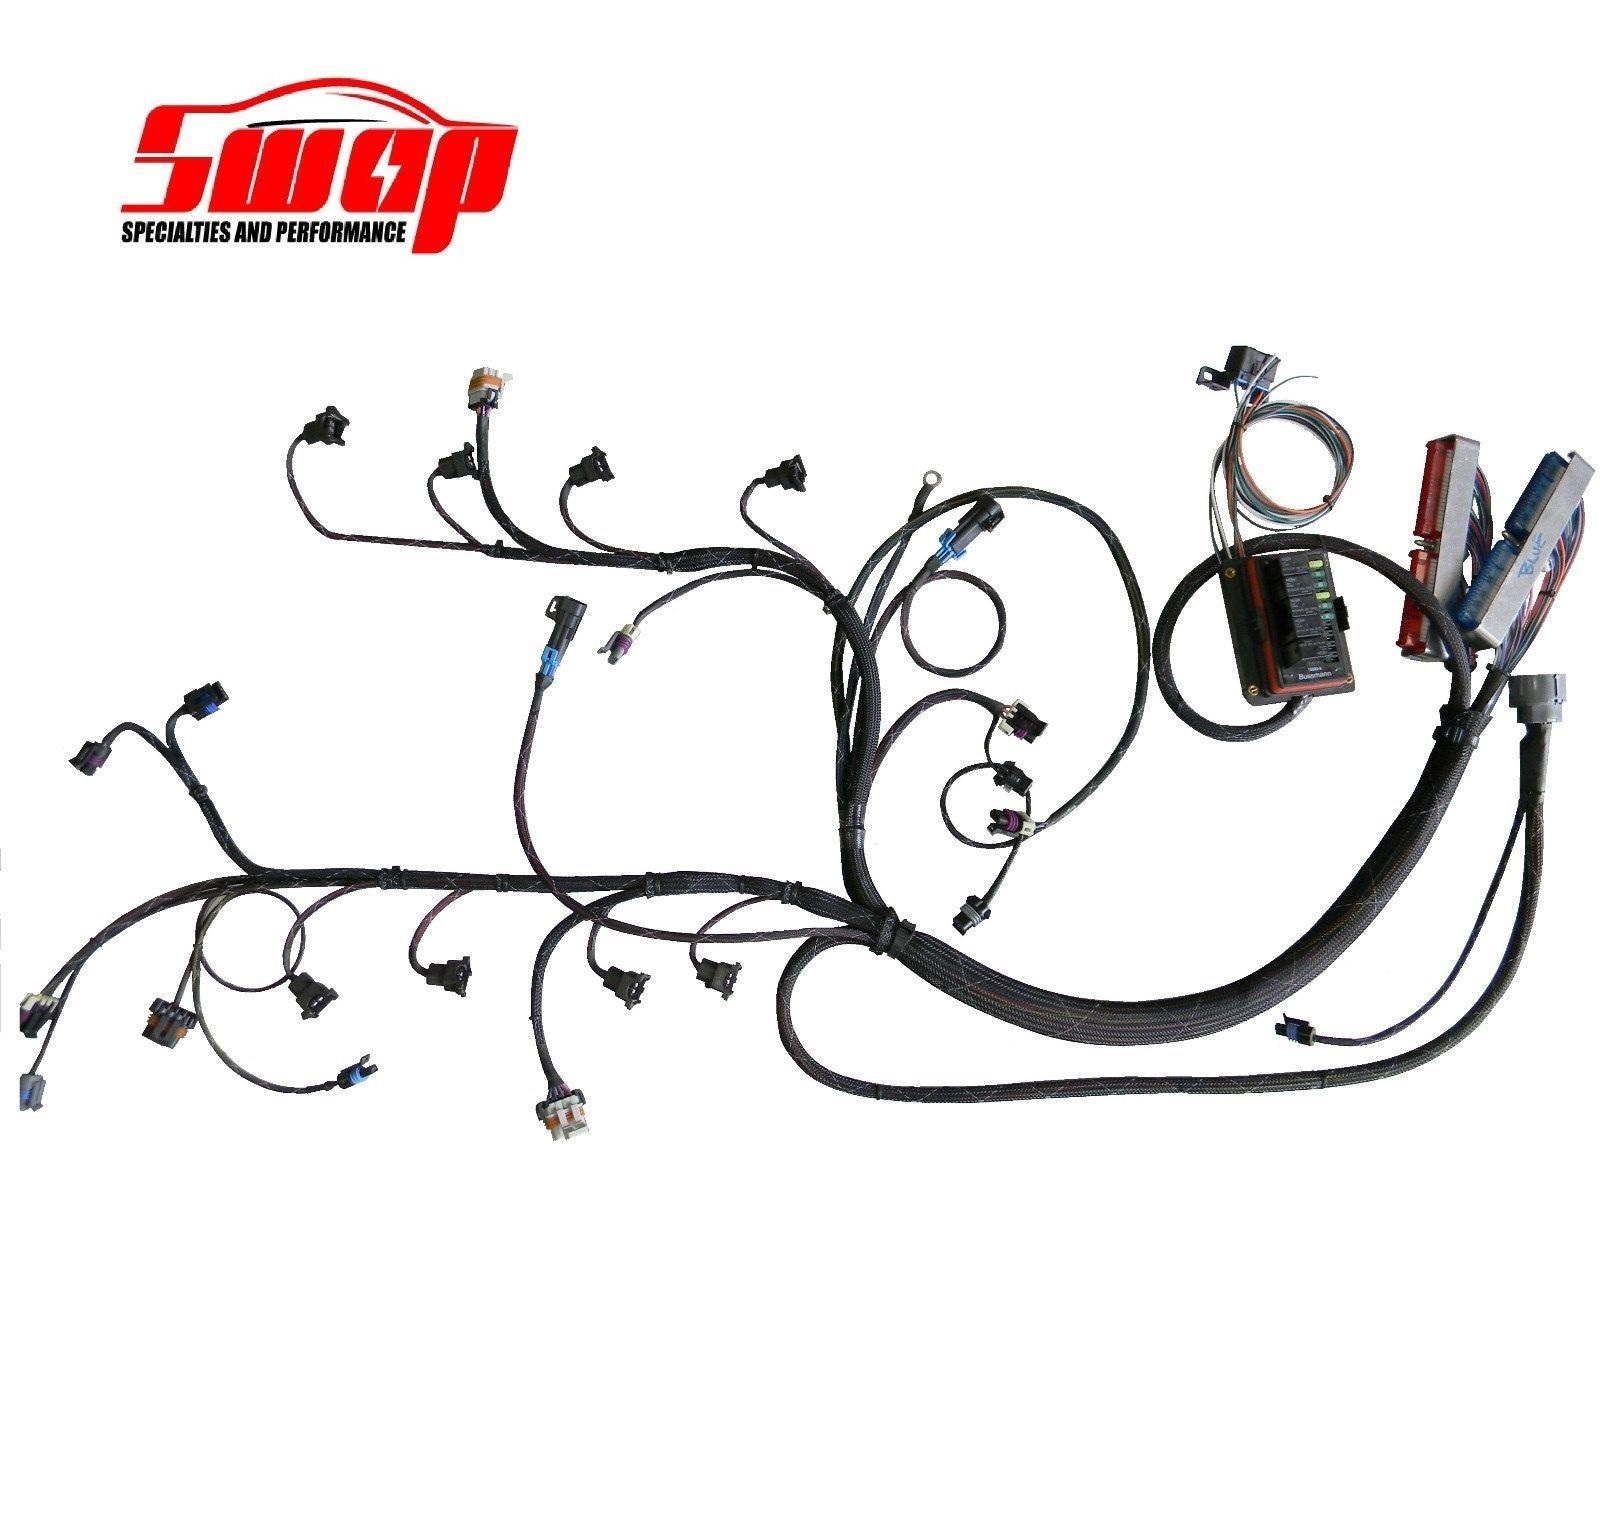 s10 v8 swap wiring diagram with Chevy 5 3 Engine Swap Kit on Chevy 4 2 Vortec Engine Diagram as well Geo Tracker Engine Swap Toyota likewise Chevy S10 Engine Parts Location besides 5fa1f9a75fa7418cf892bac60698f961 furthermore 96 Ss Impala Engine Diagram.